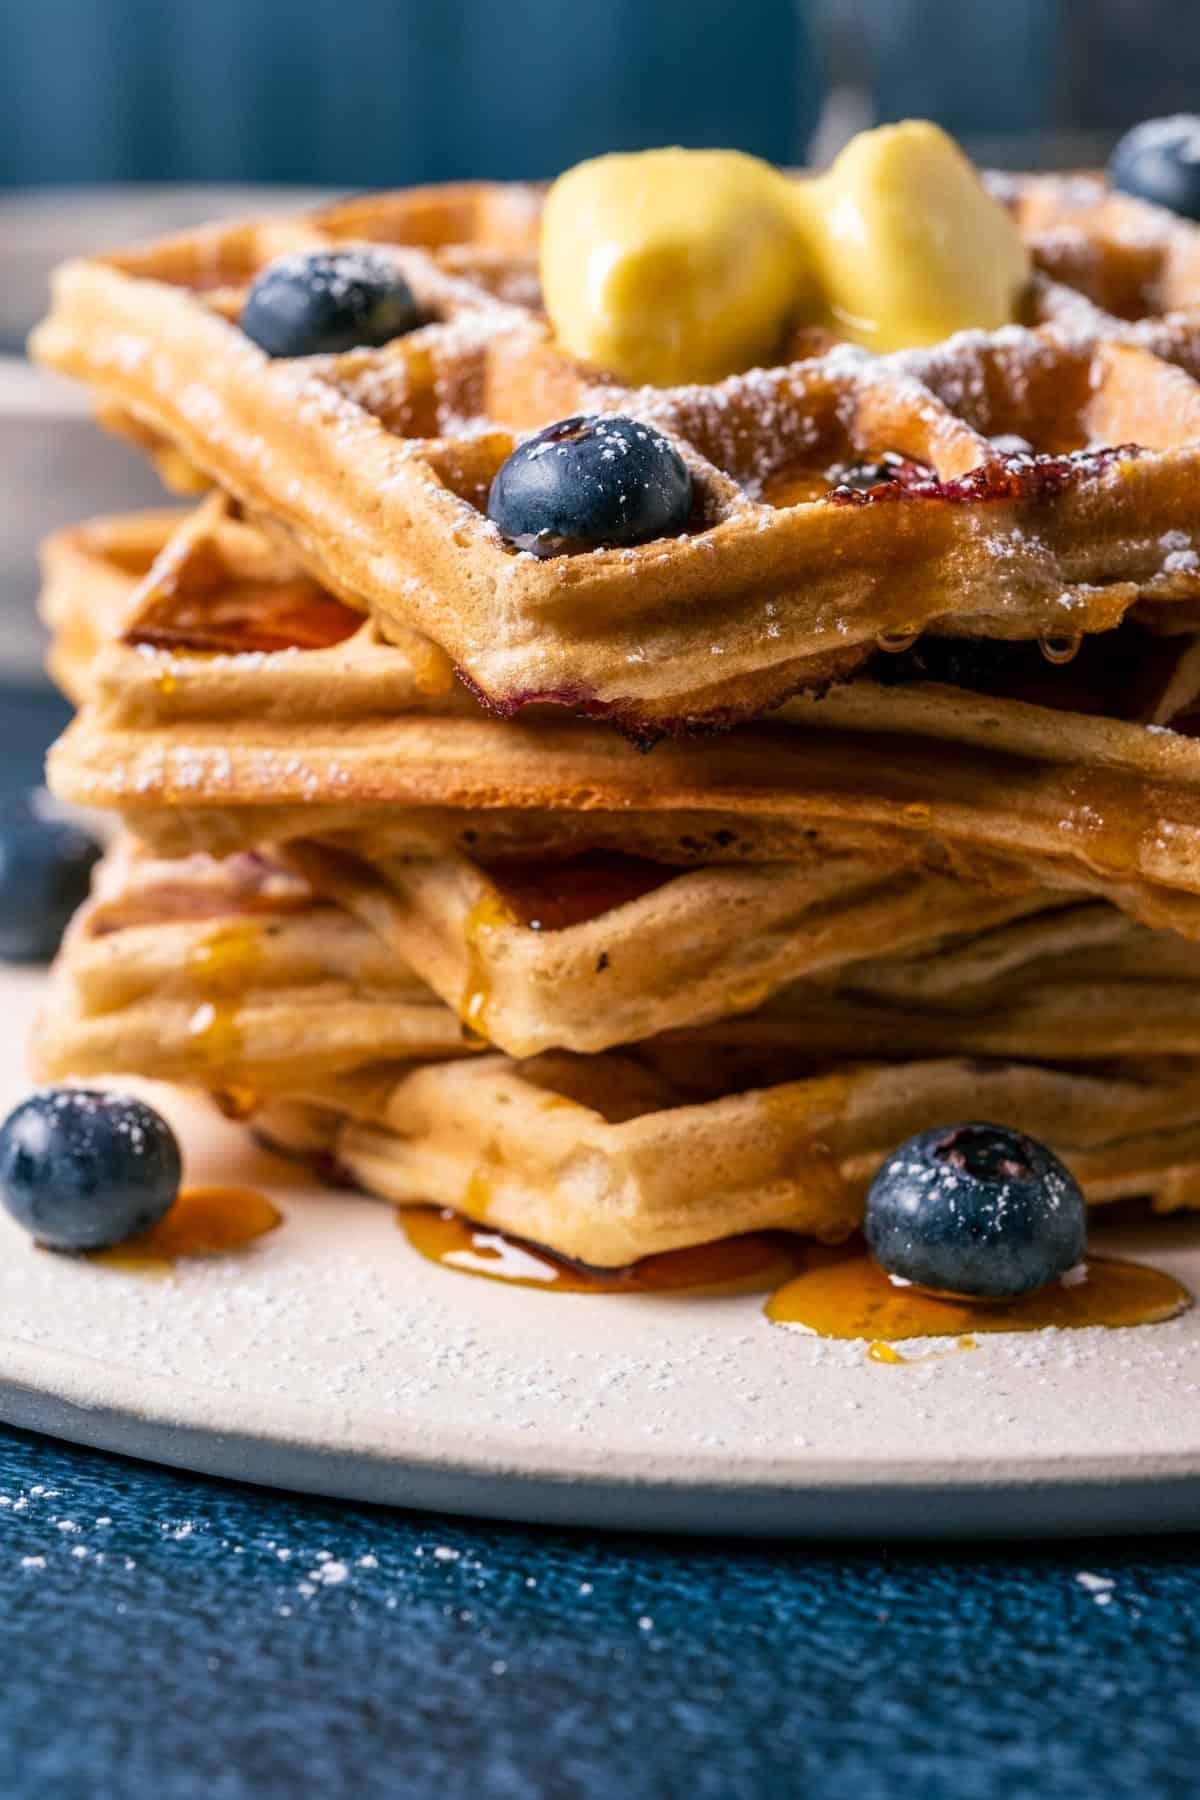 Stack of blueberry waffles topped with vegan butter, powdered sugar and syrup on a white plate.